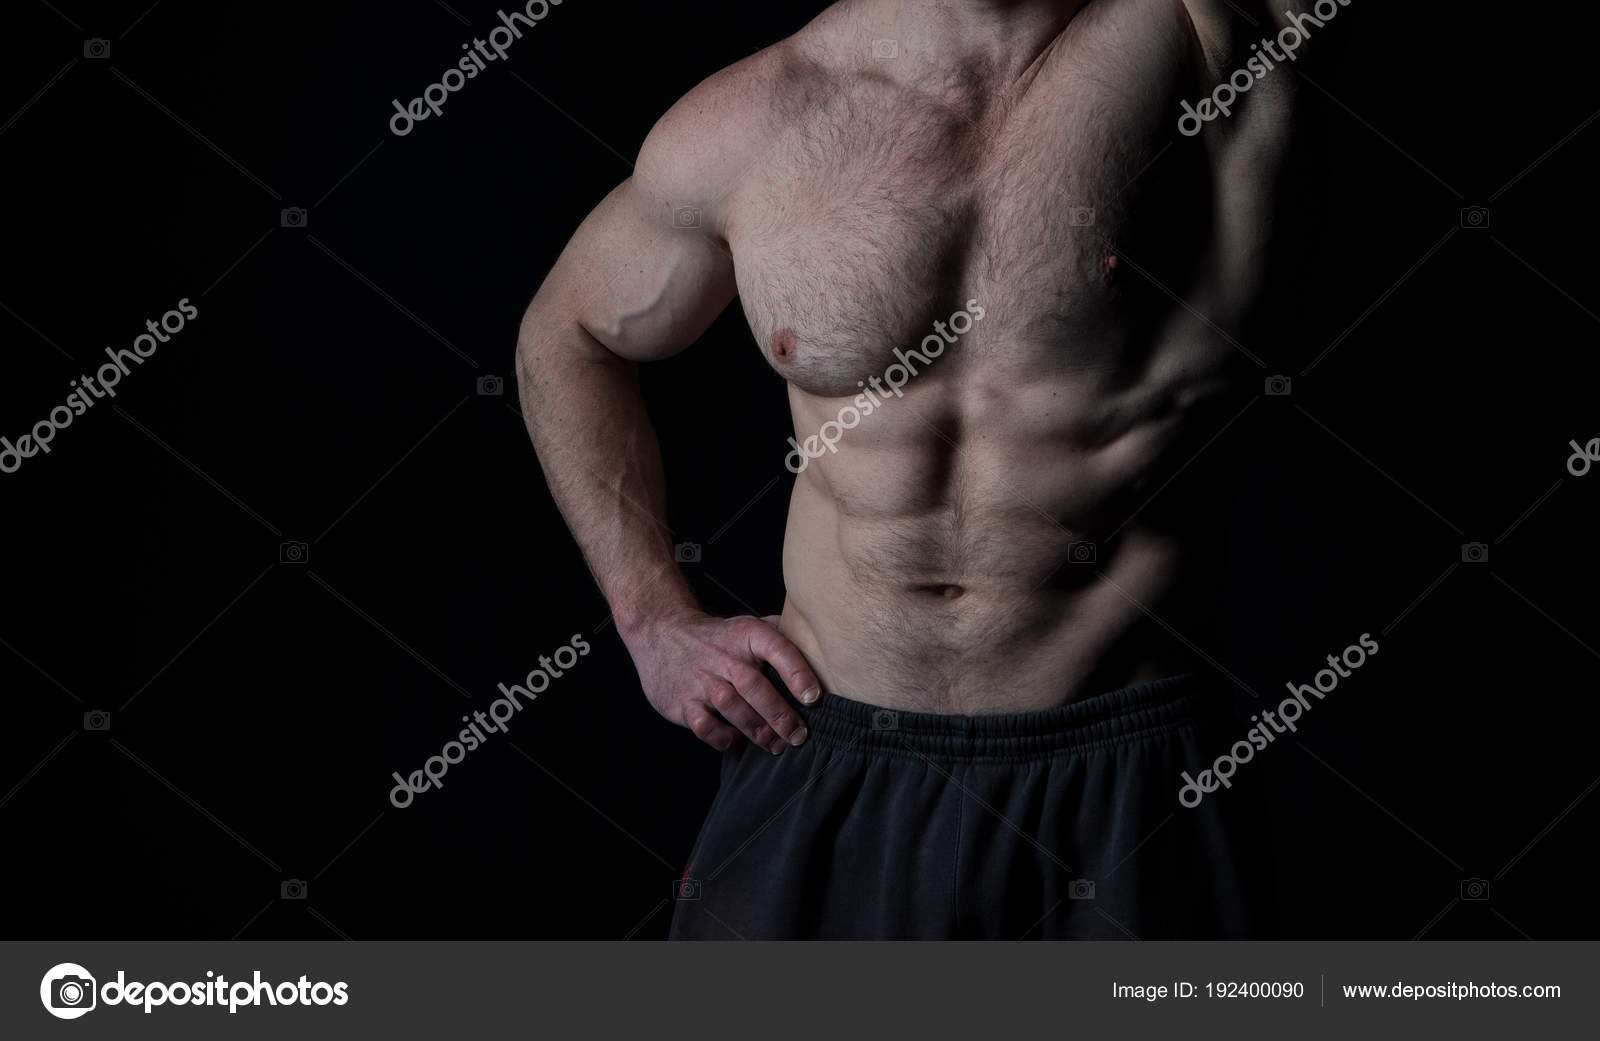 Torso With Six Pack And Ab Muscles Arm With Strong Biceps And